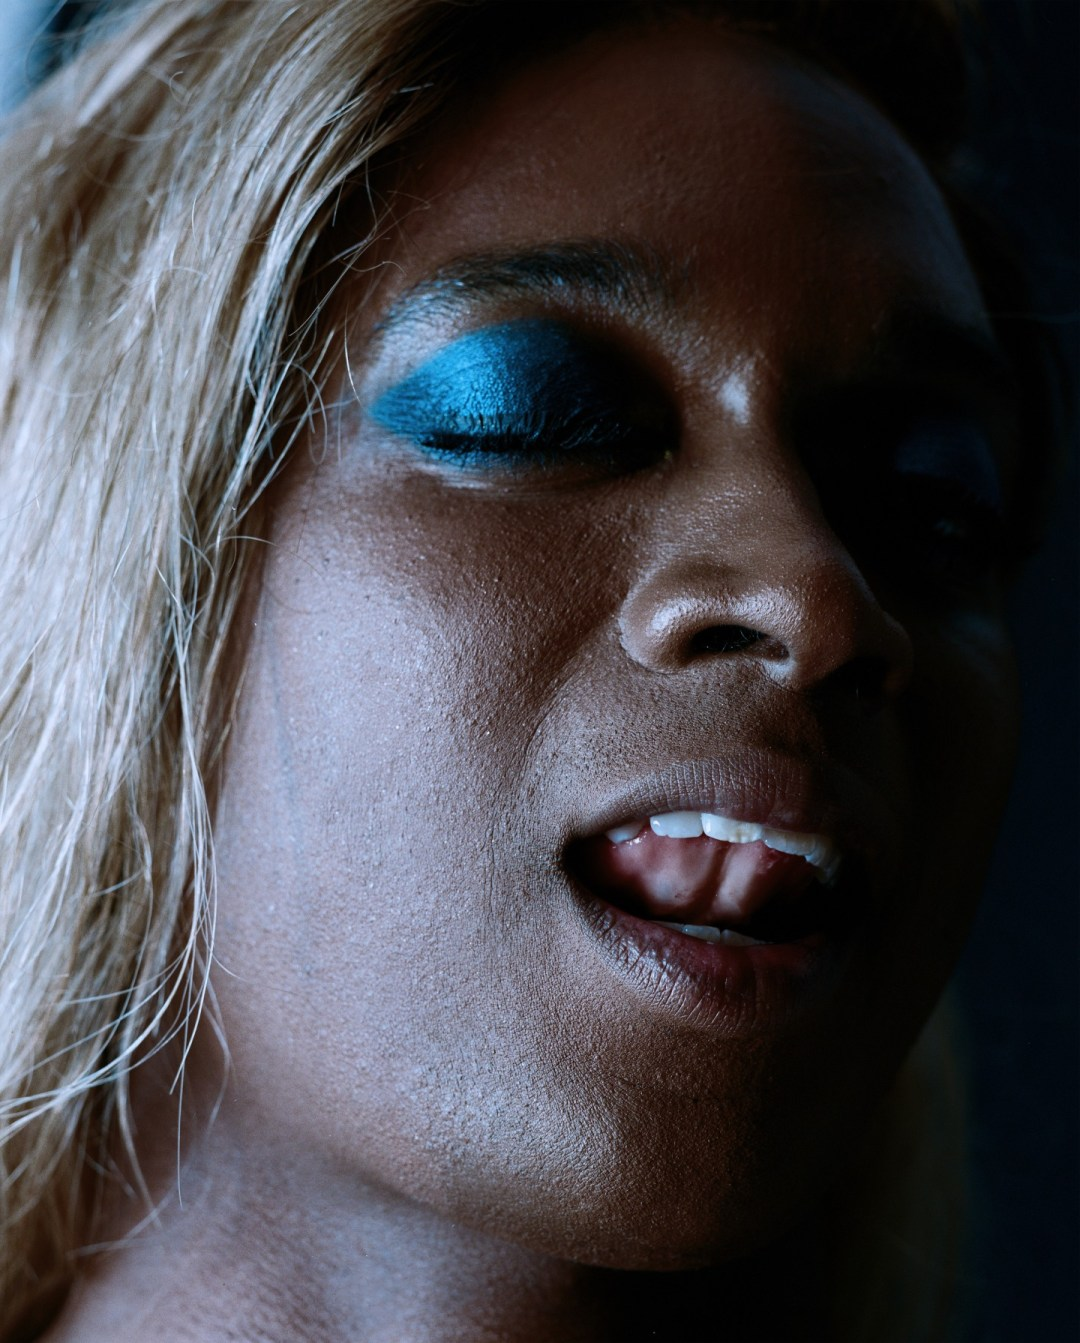 Lotic is using their voice